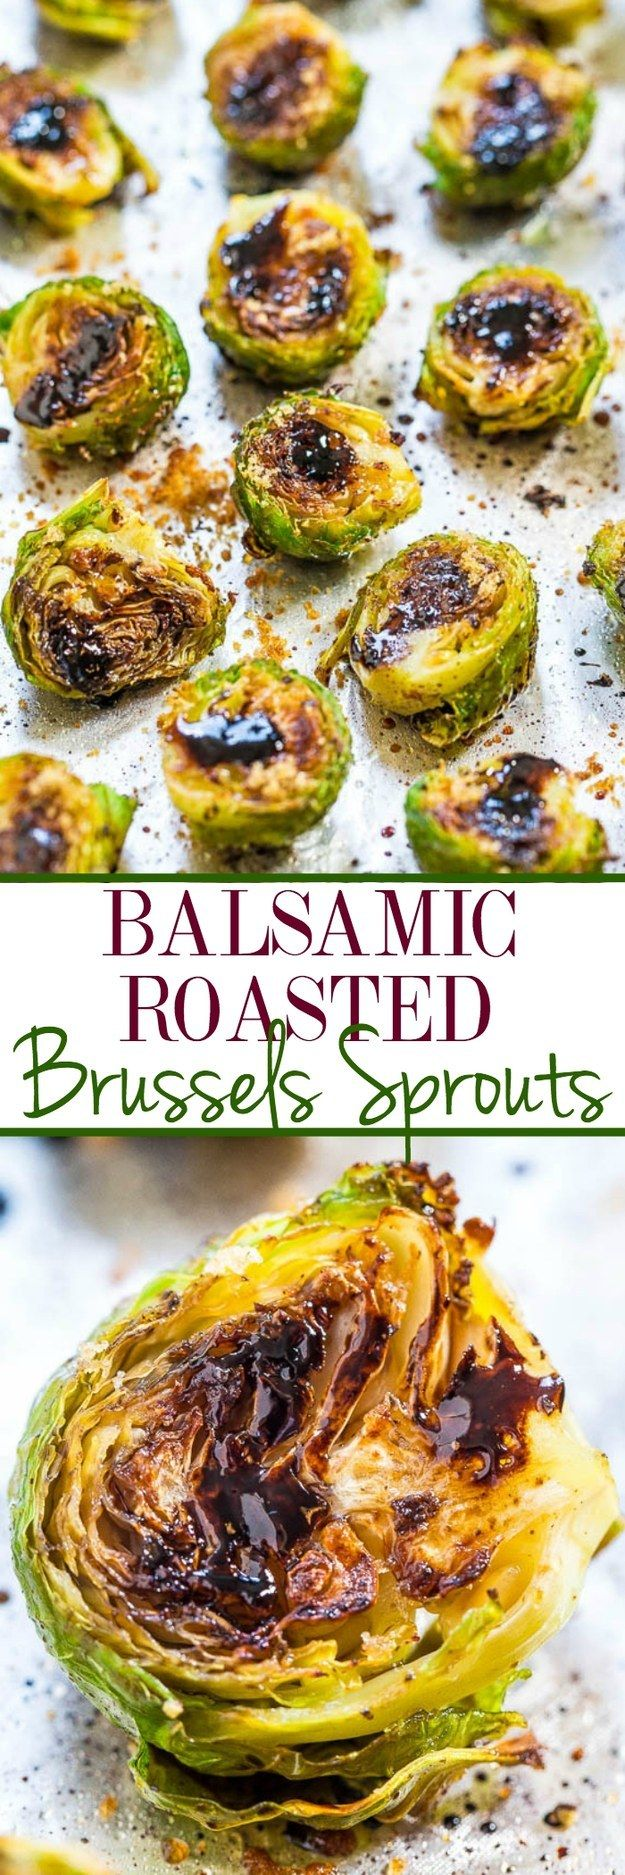 Balsamic Roasted Brussels Sprouts | 17 Easy Vegetable Sides That Are Actually Delicious